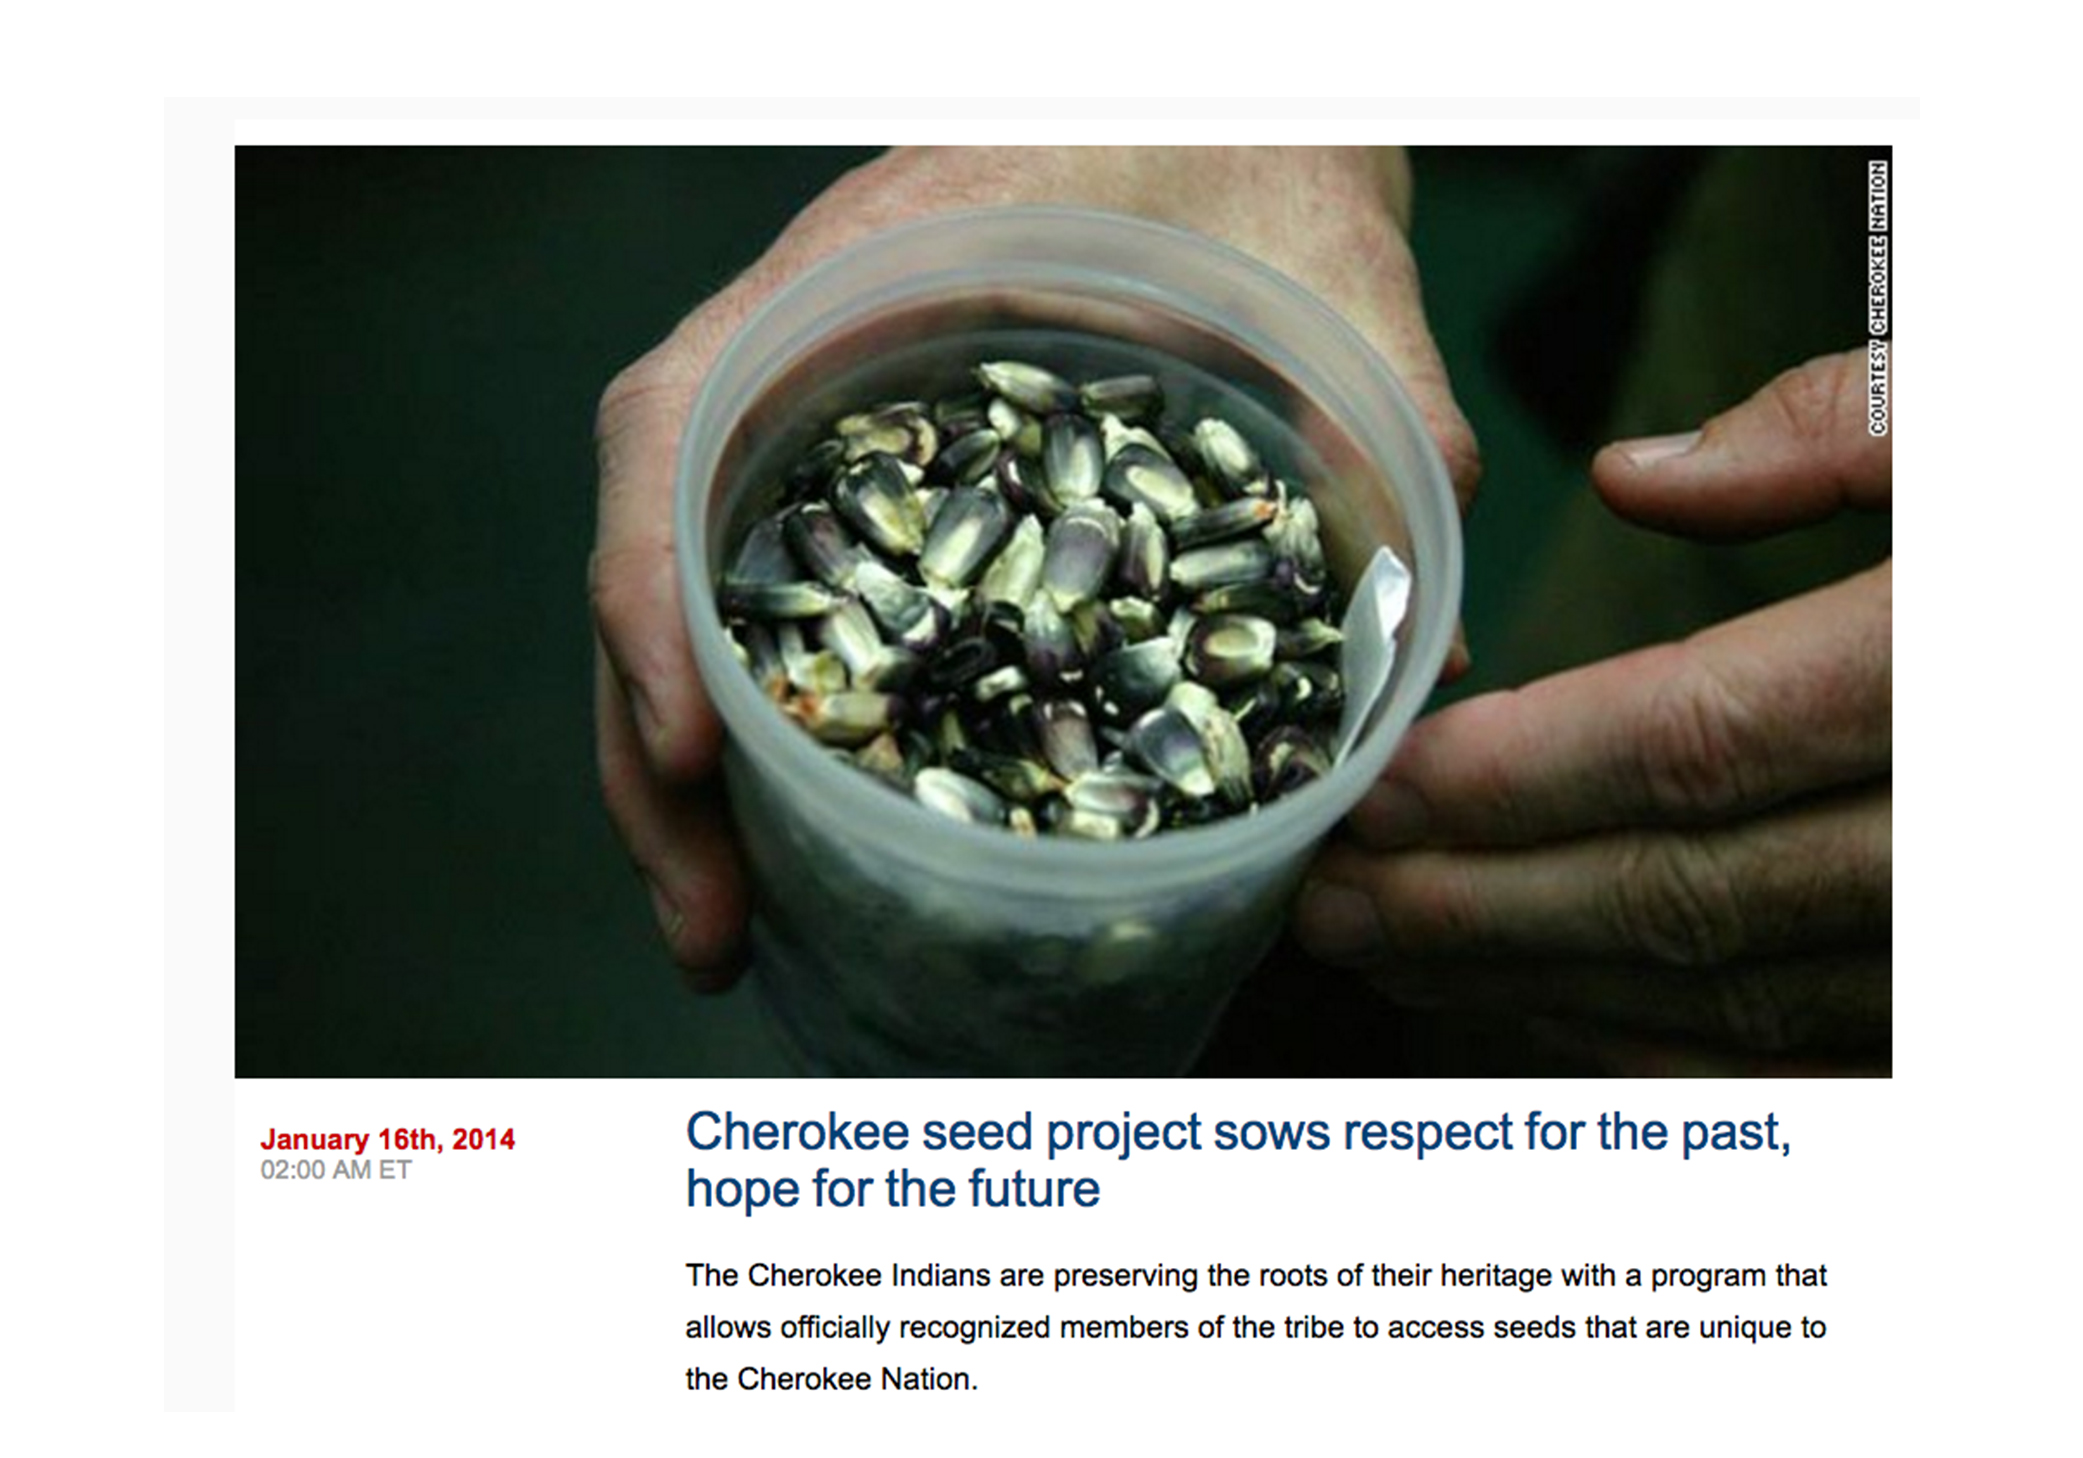 Cherokee seed project sows respect for the past, hope for the future